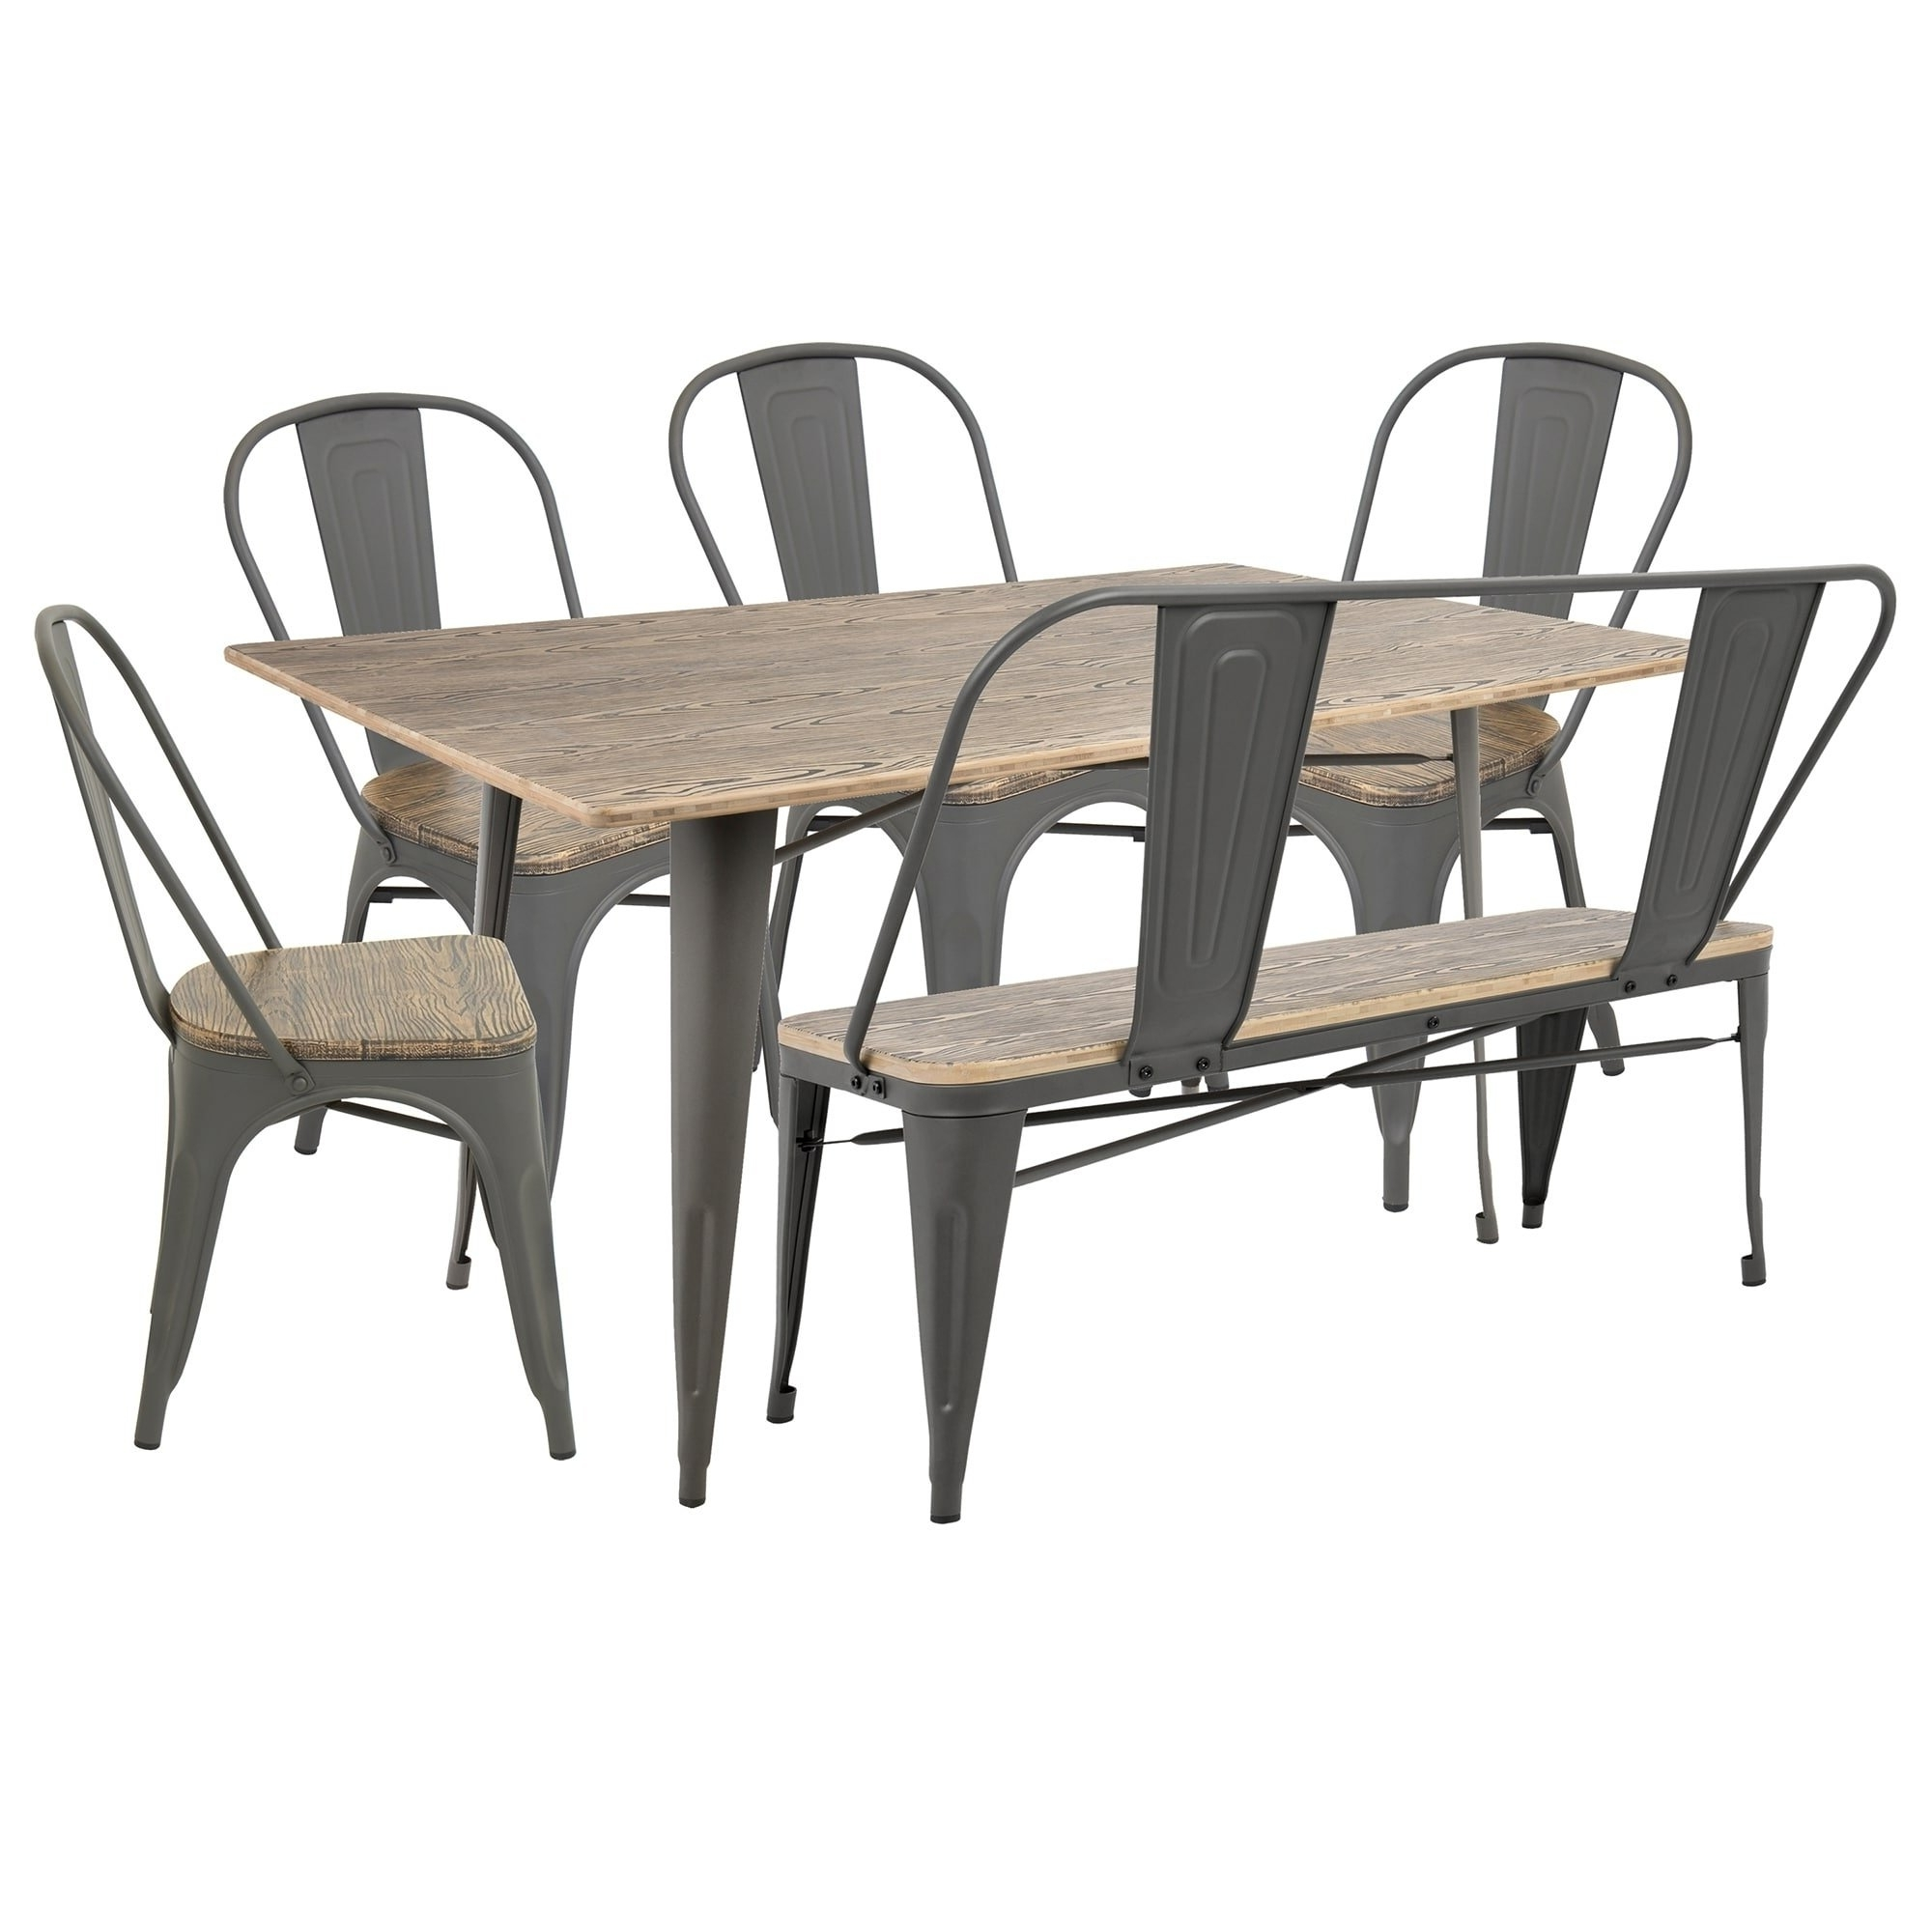 Most Current Craftsman 9 Piece Extension Dining Sets With Uph Side Chairs In Brown Kitchen & Dining Room Sets For Less (View 24 of 25)